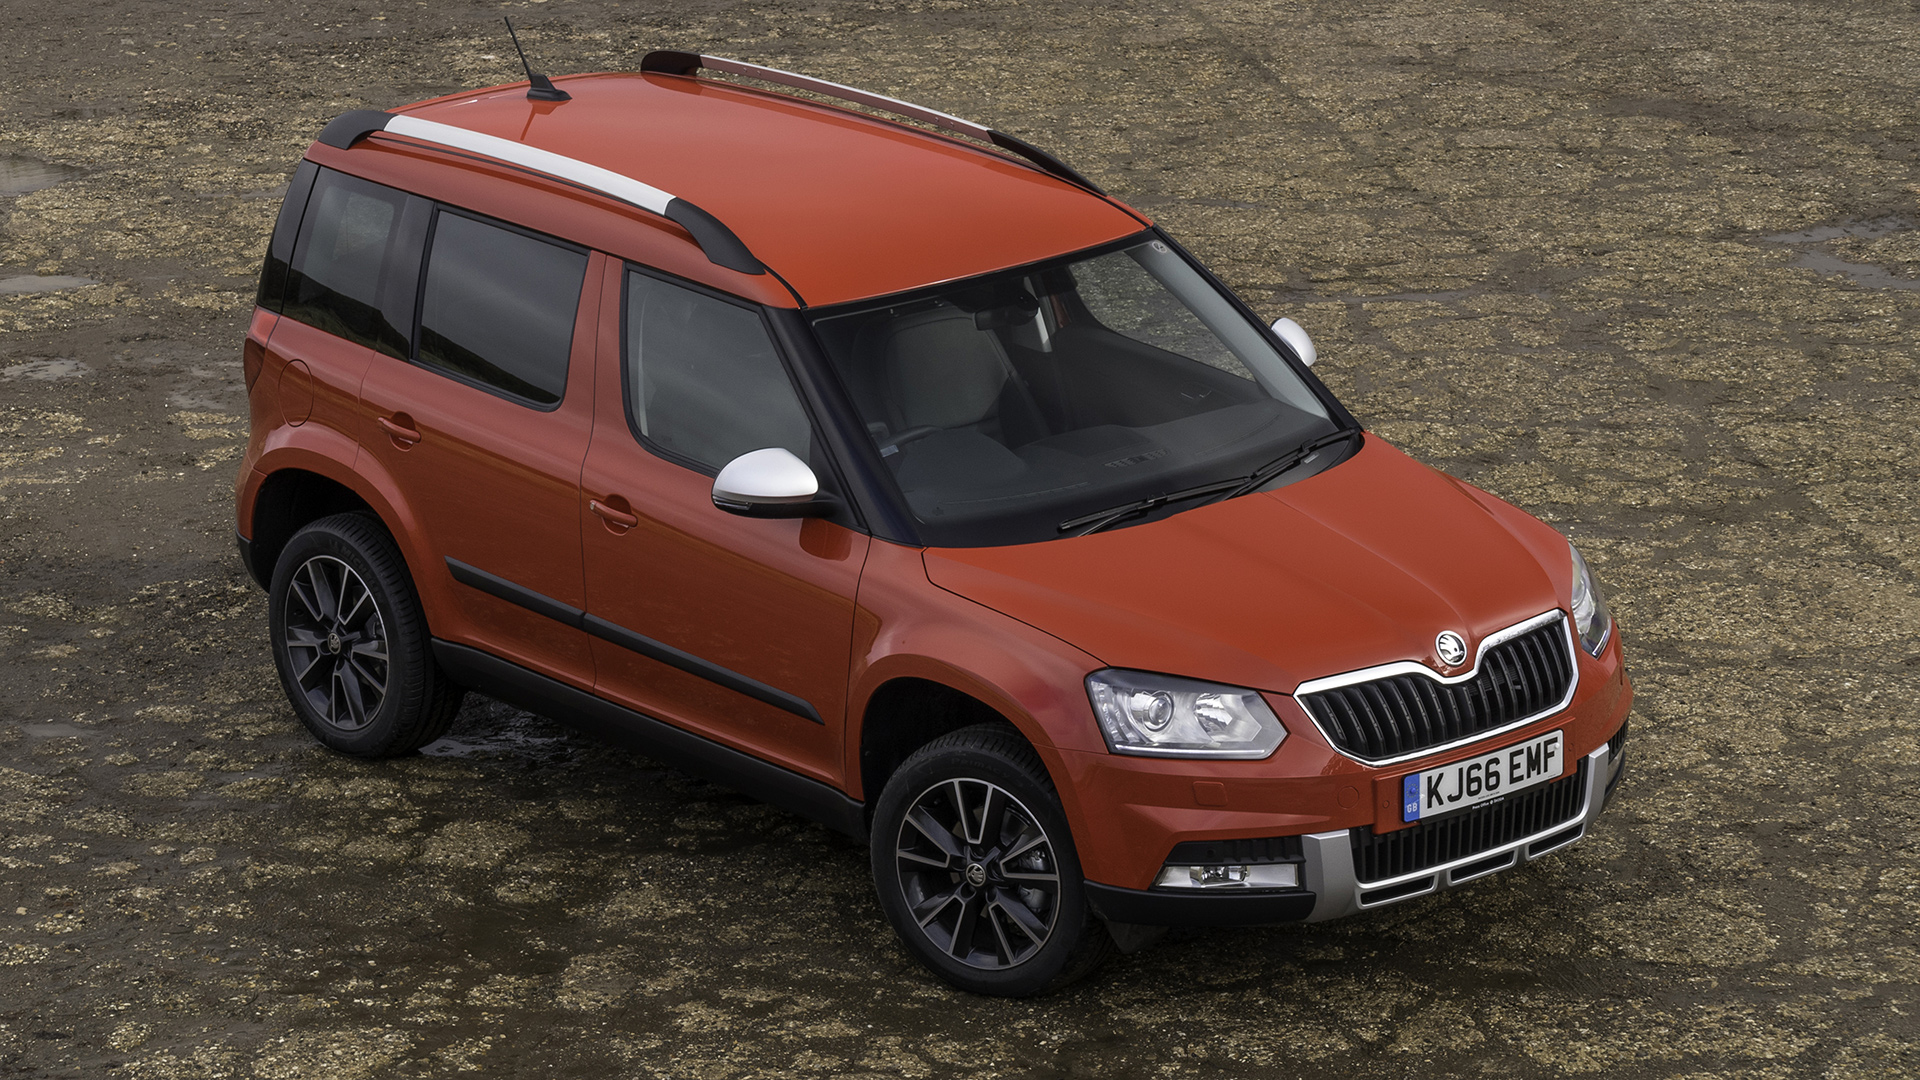 Skoda Yeti Suv 2013 Review Auto Trader Uk